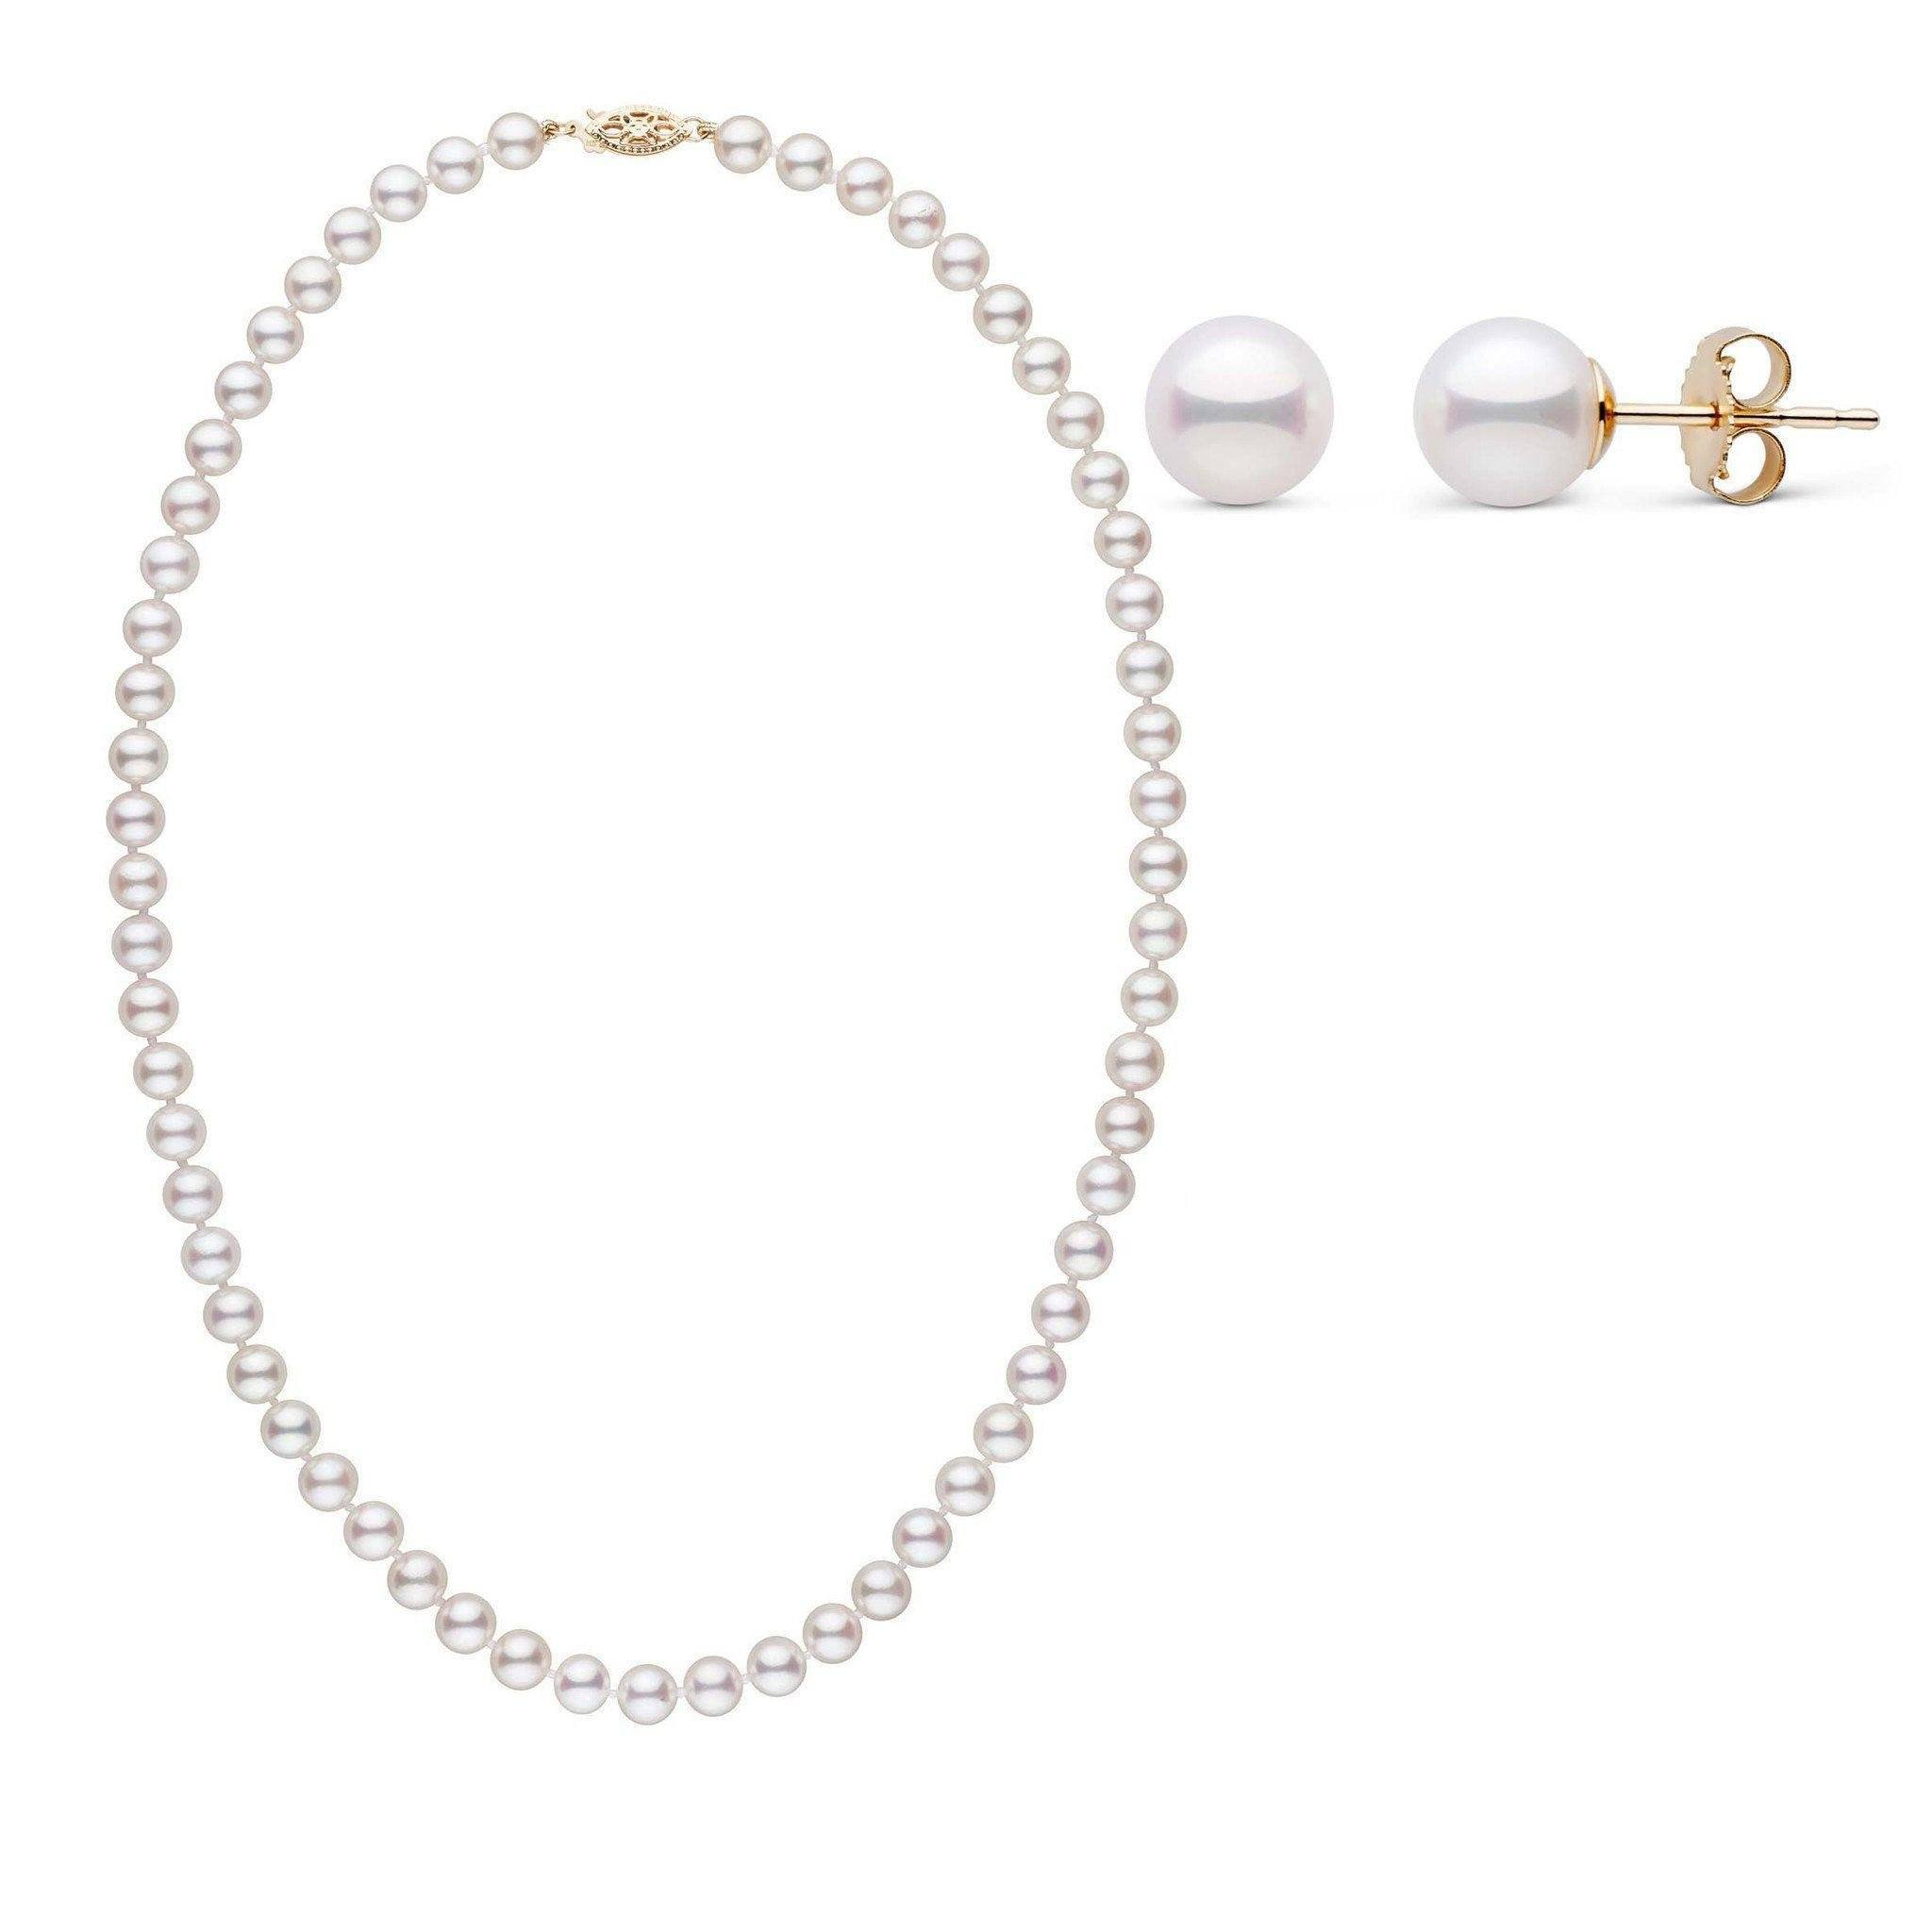 18 Inch 2 Piece Set of 6.0-6.5 mm AAA White Akoya Pearls